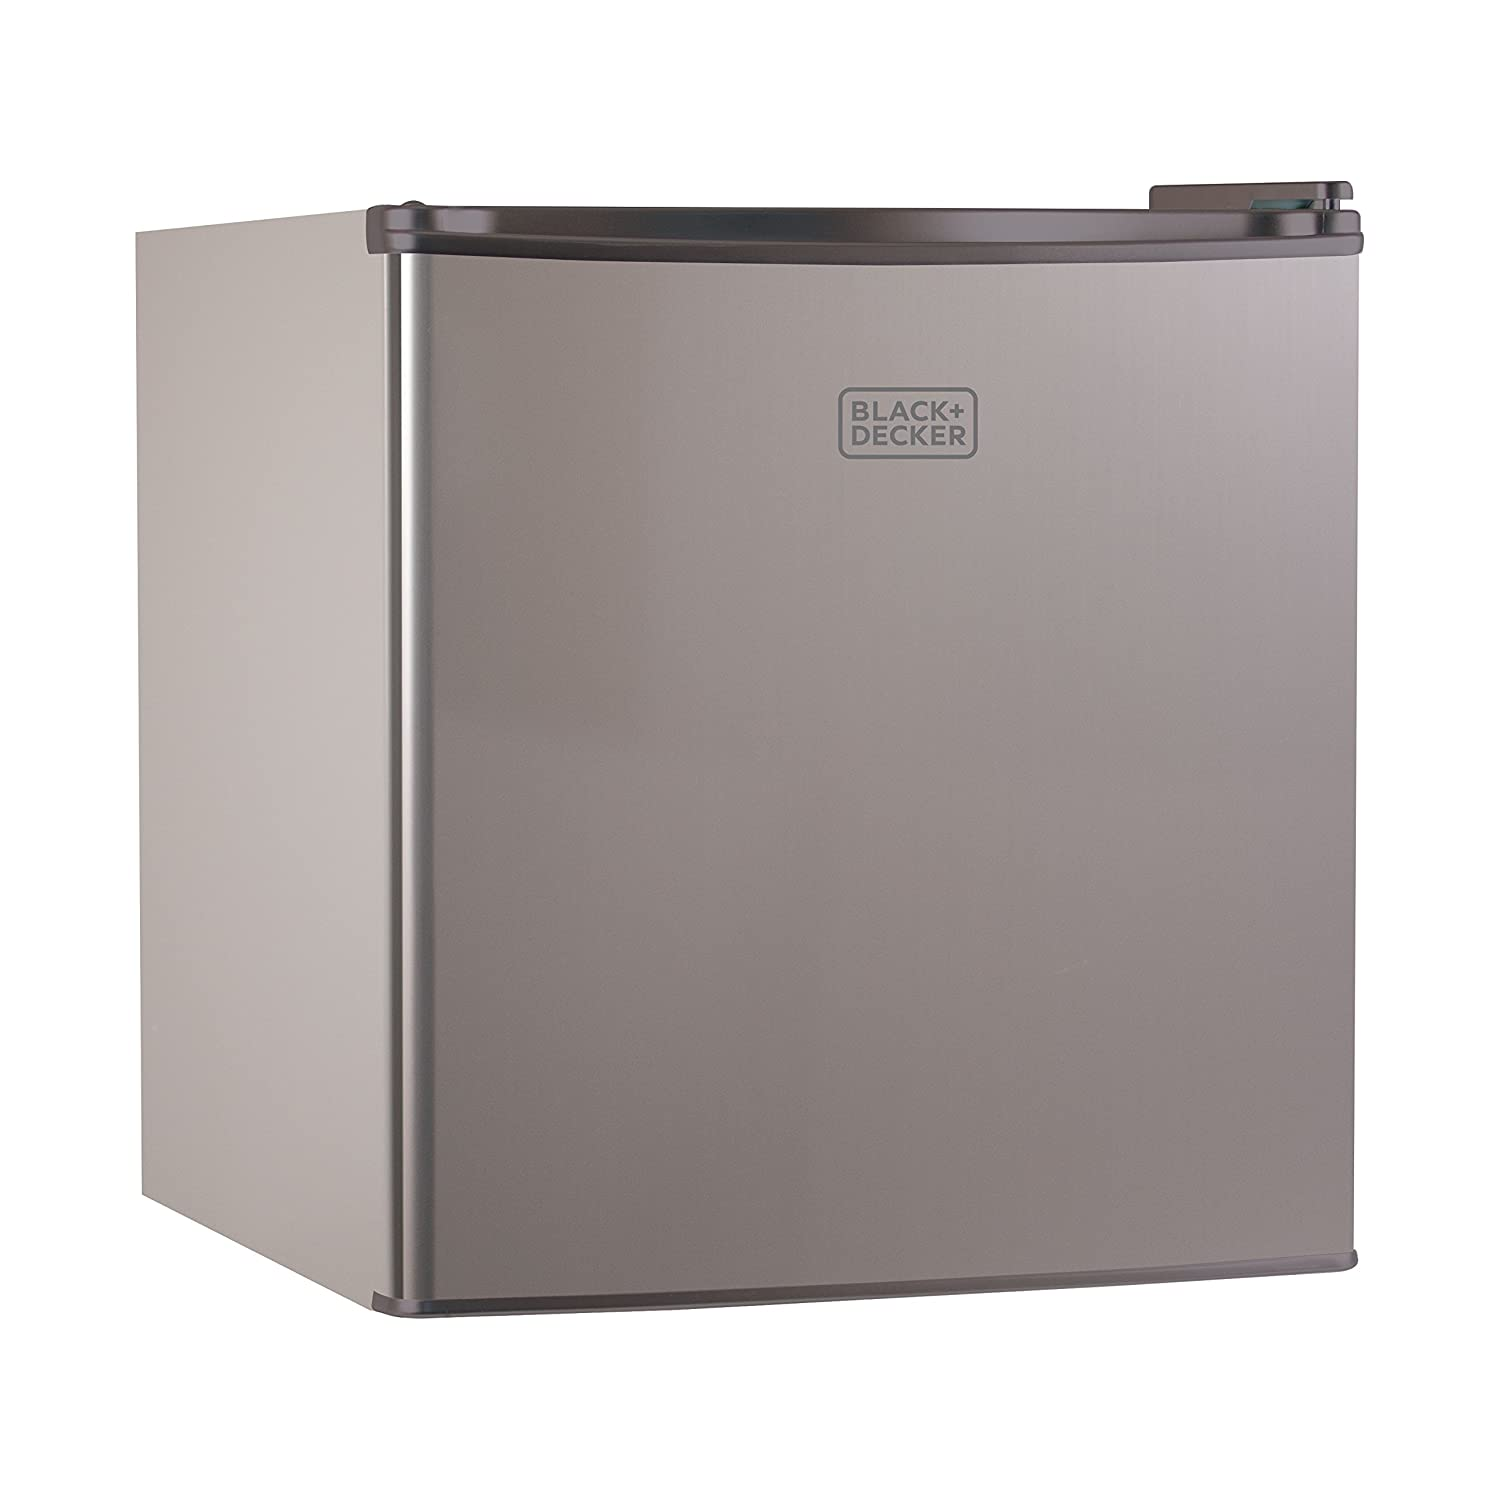 BLACK+DECKER BCRK17V Compact Refrigerator Energy Star Single Door Mini Fridge with Freezer, 1.7 Cubic Ft., VCM